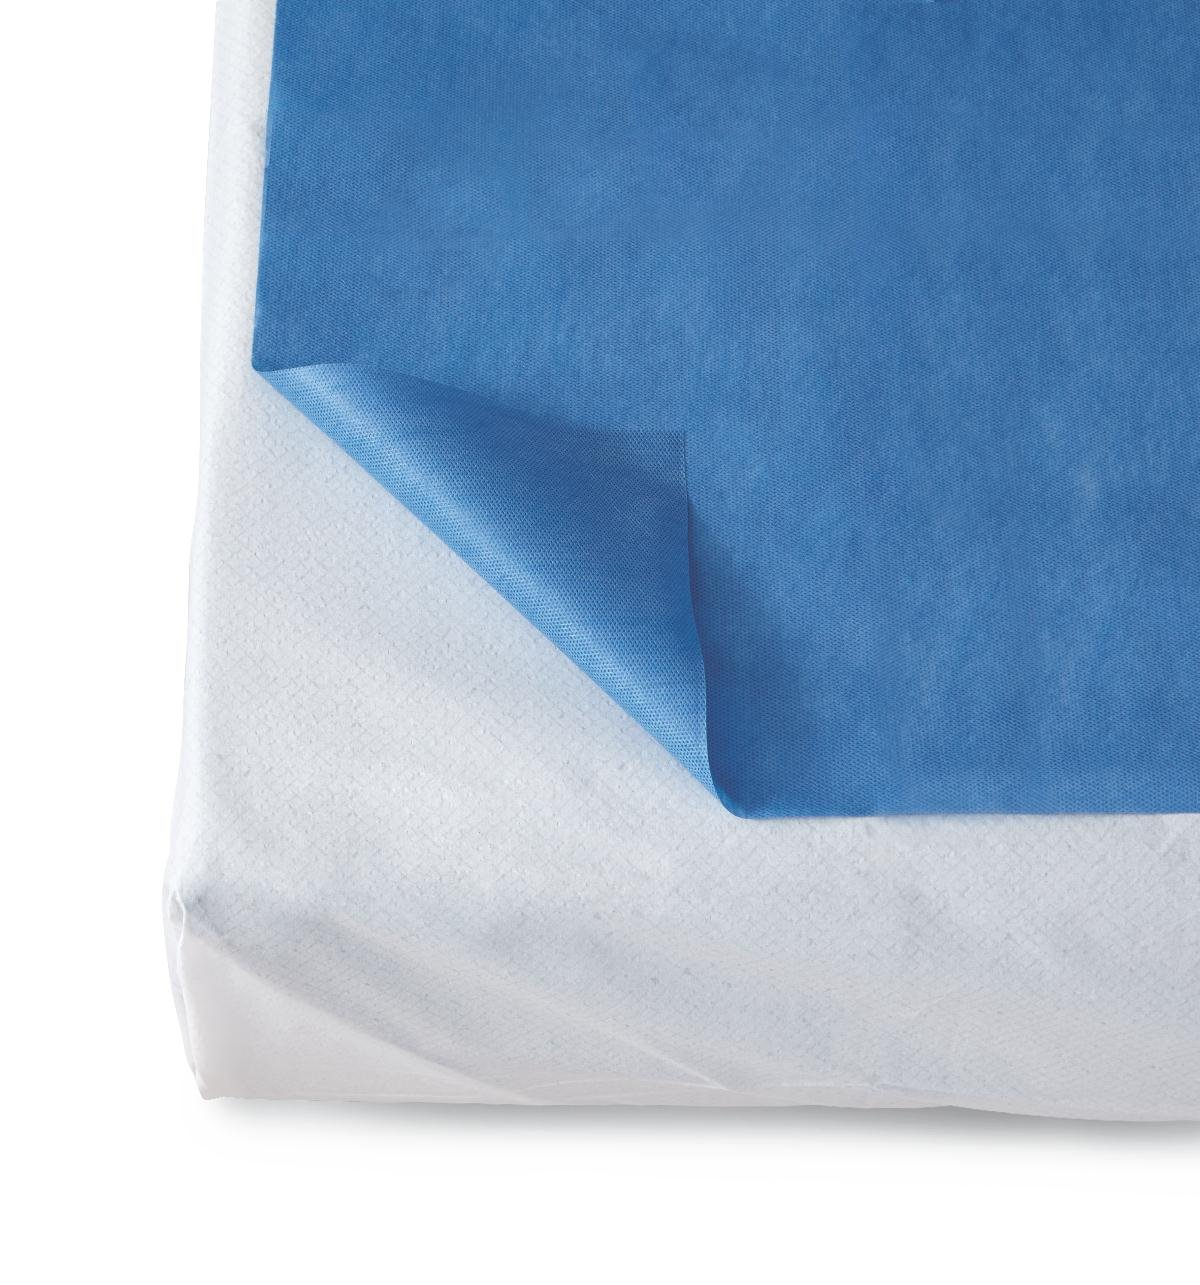 Medline NON33100 Disposable Flat Bed Sheets, 40'' x 84'', Dark Blue (Pack of 50)